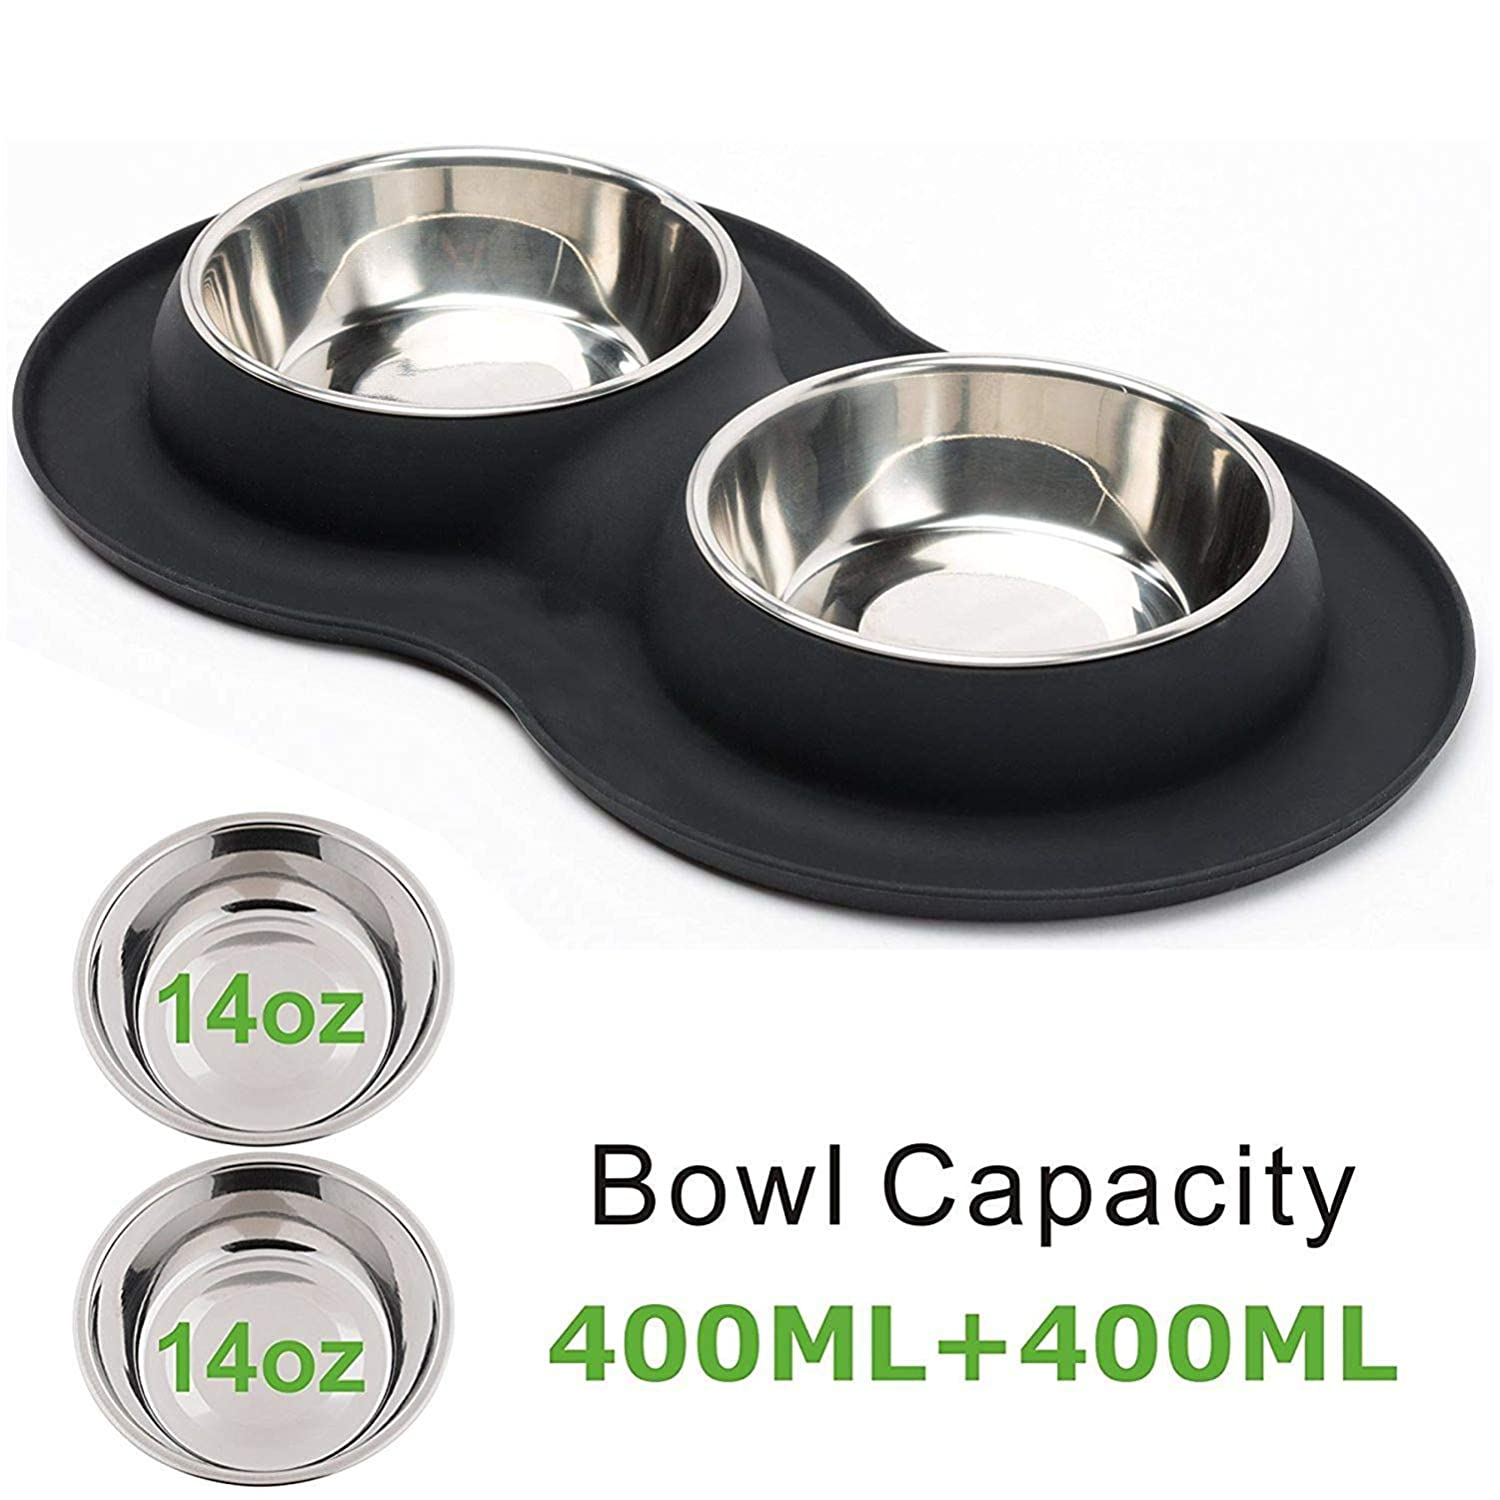 BLACK Small BLACK Small Roysili Double Dog Bowl Pet Feeding Station, Stainless Steel Water and Food Bowls with Non Skid Non Spill Silicone Mat, Premium Quality Dog Bowl Holder for Small Medium Dogs Cats Puppy (Small, Black)